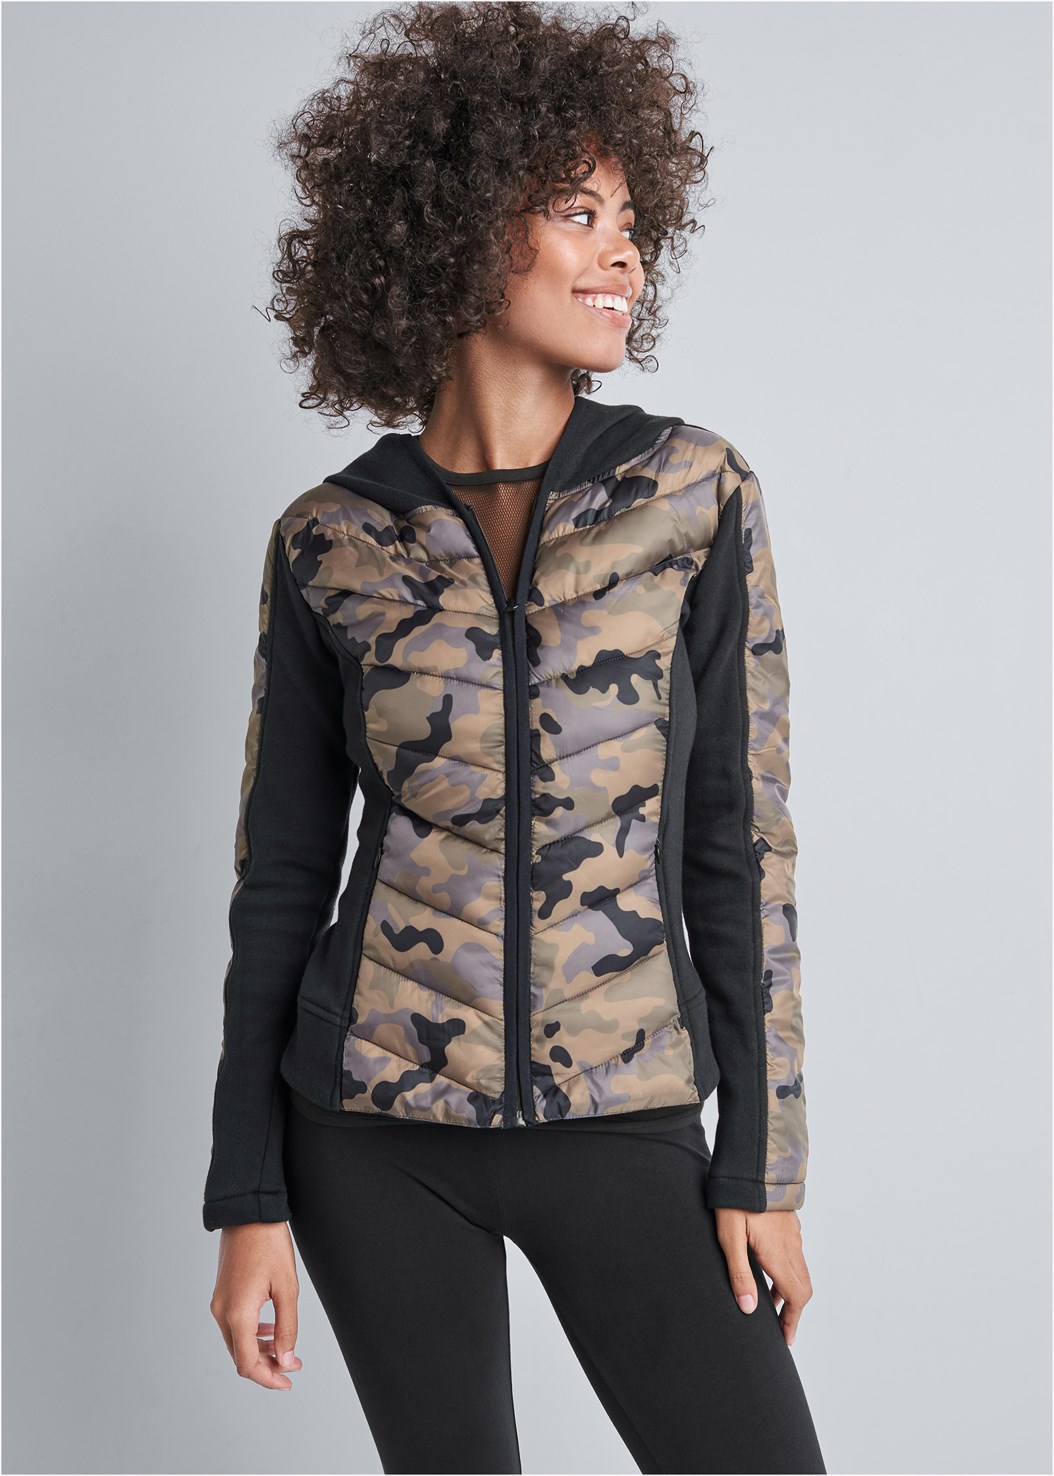 Camo Print Puffer Detail Jacket,Front Mesh Active Tank,Basic Leggings